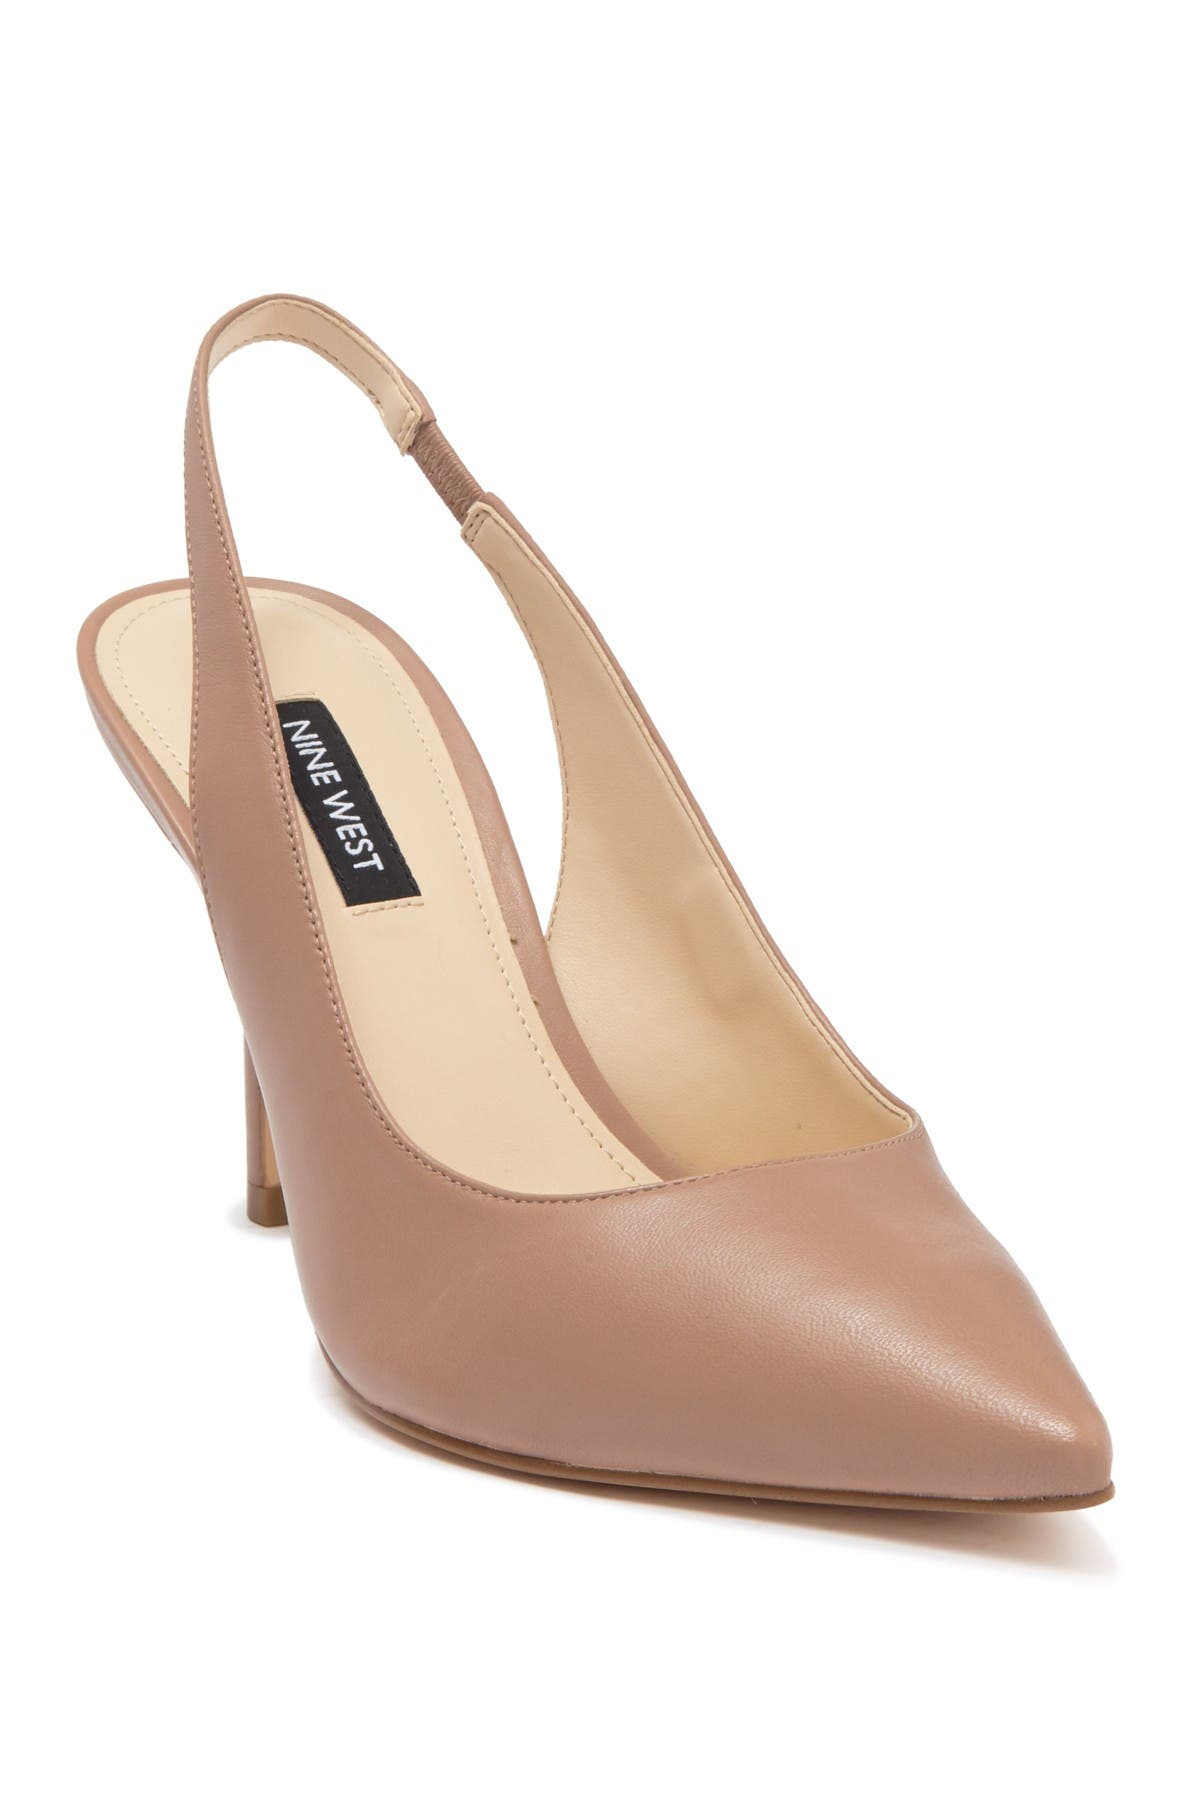 Image of Nine West Holly Leather Pointed Toe Slingback Pump